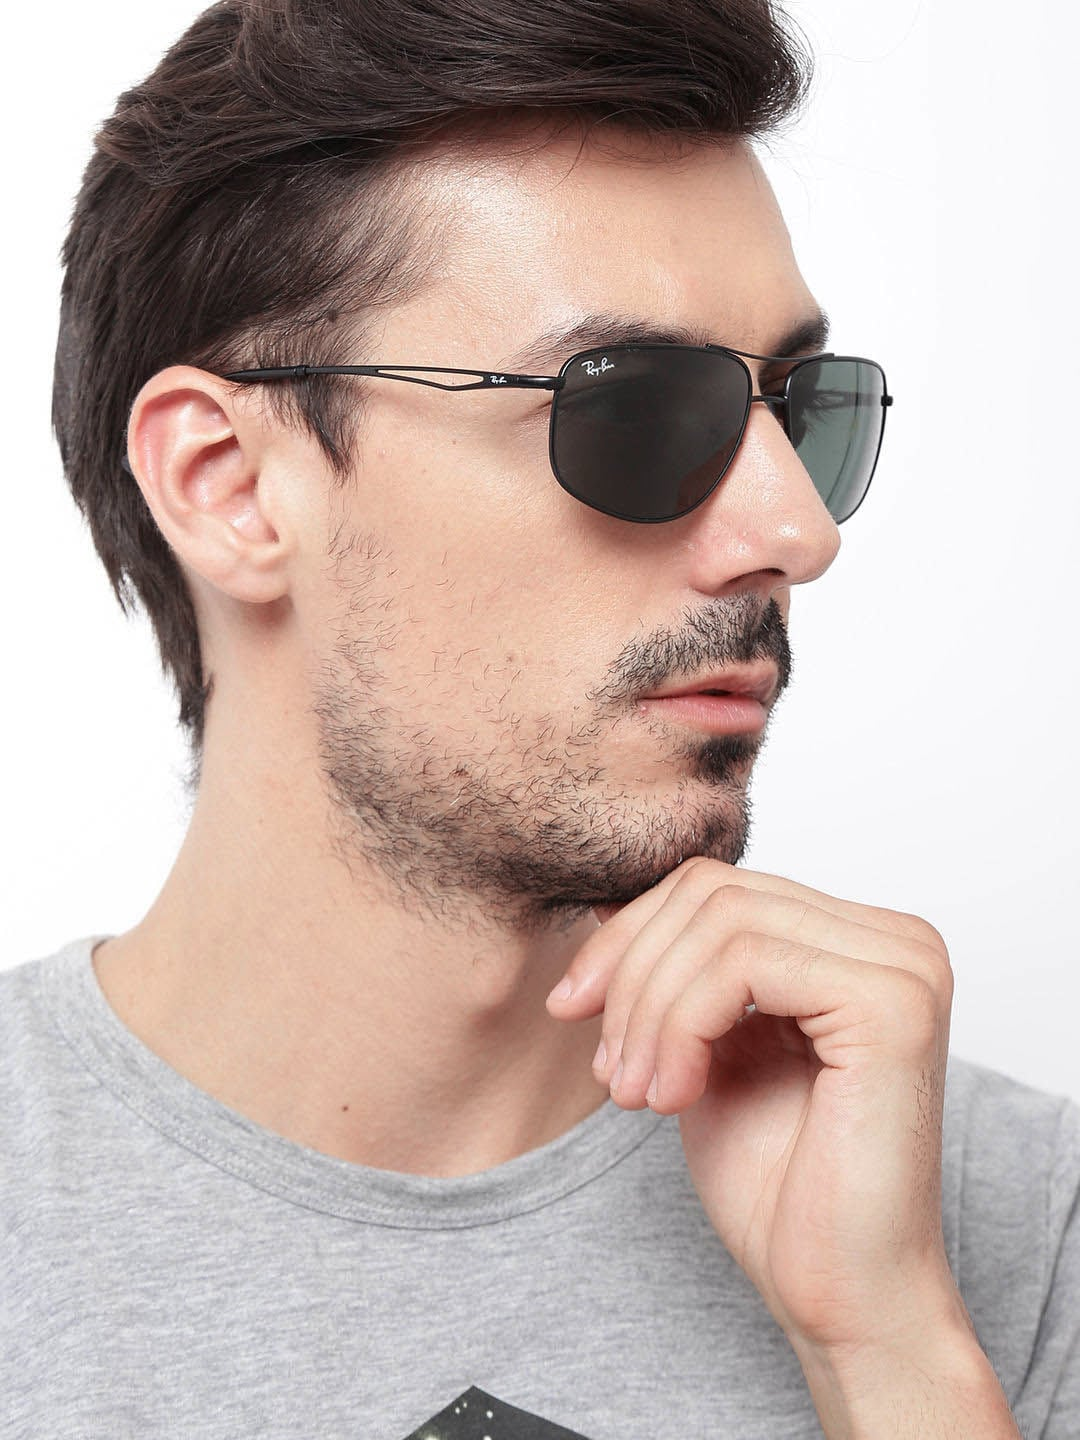 cricket sunglasses for men  Sunglasses For Men - Buy Mens Sunglasses, Aviators \u0026 Goggles ...